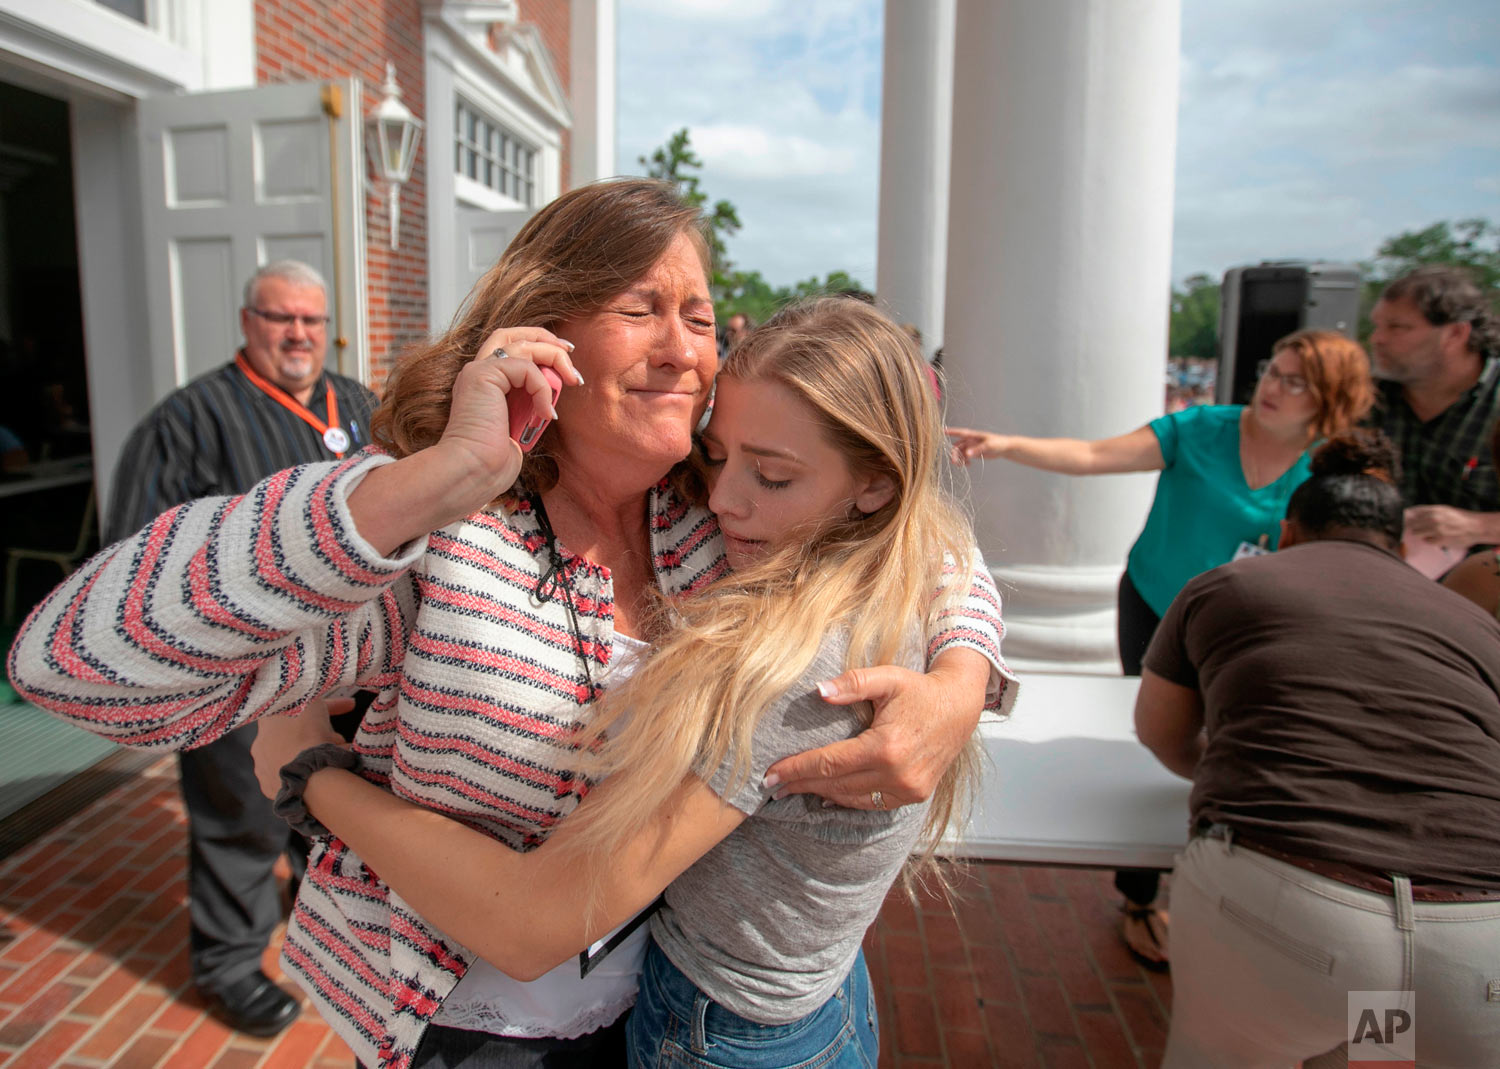 Judge Sarah Ritterhoff Williams embraces family friend student Attie French after finding her in the crowd at First Baptist Church while looking for her own daughter following a shooting at Forest High School, Friday 20, 2018 in Ocala, Fla. One student shot another in the ankle at the high school and a suspect is in custody, authorities said Friday. The injured student was taken to a local hospital for treatment. (Alan Youngblood/Star-Banner via AP)